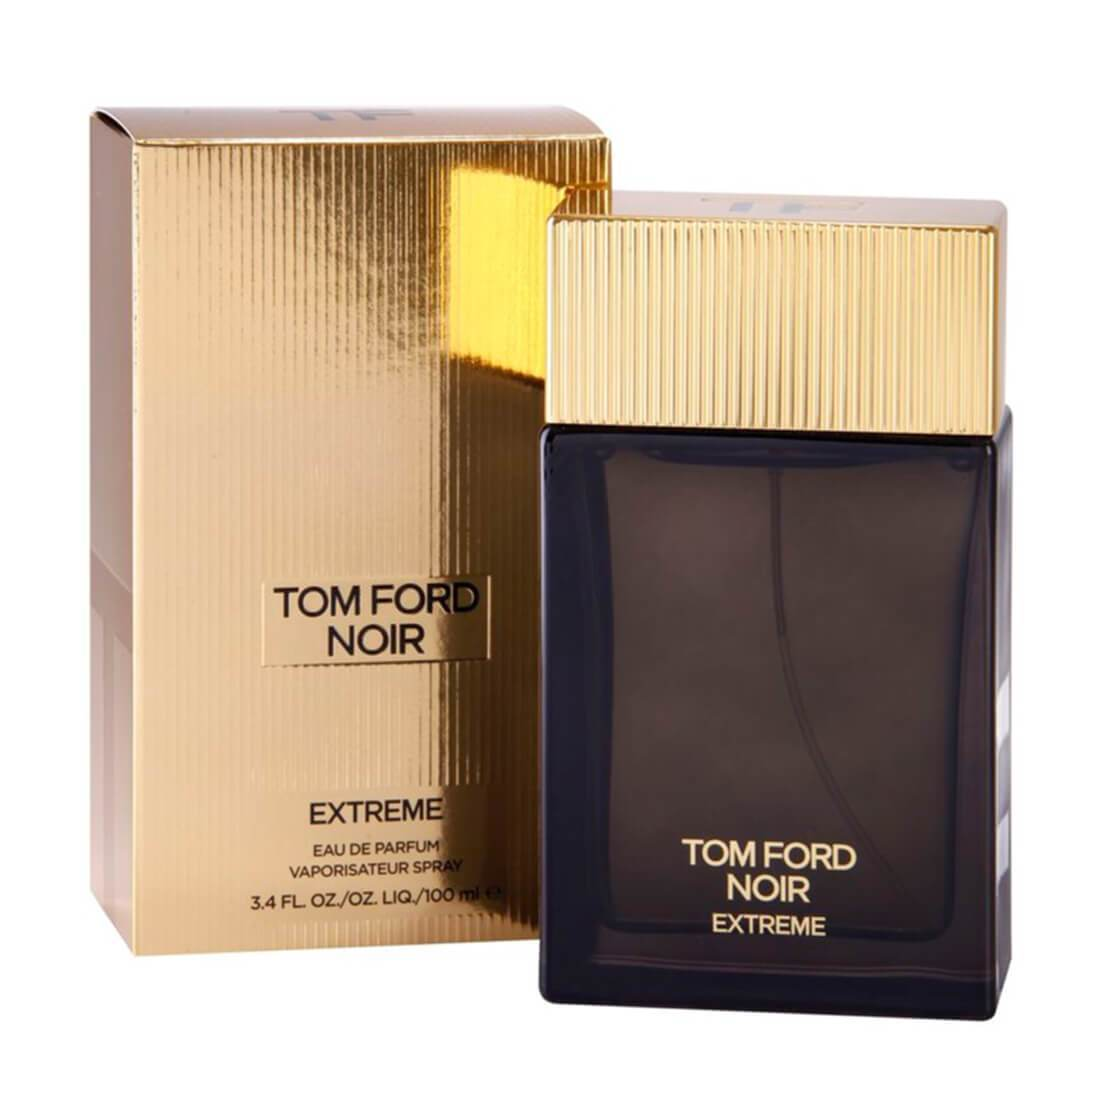 Tom Ford Noir Extreme 100ml EDP